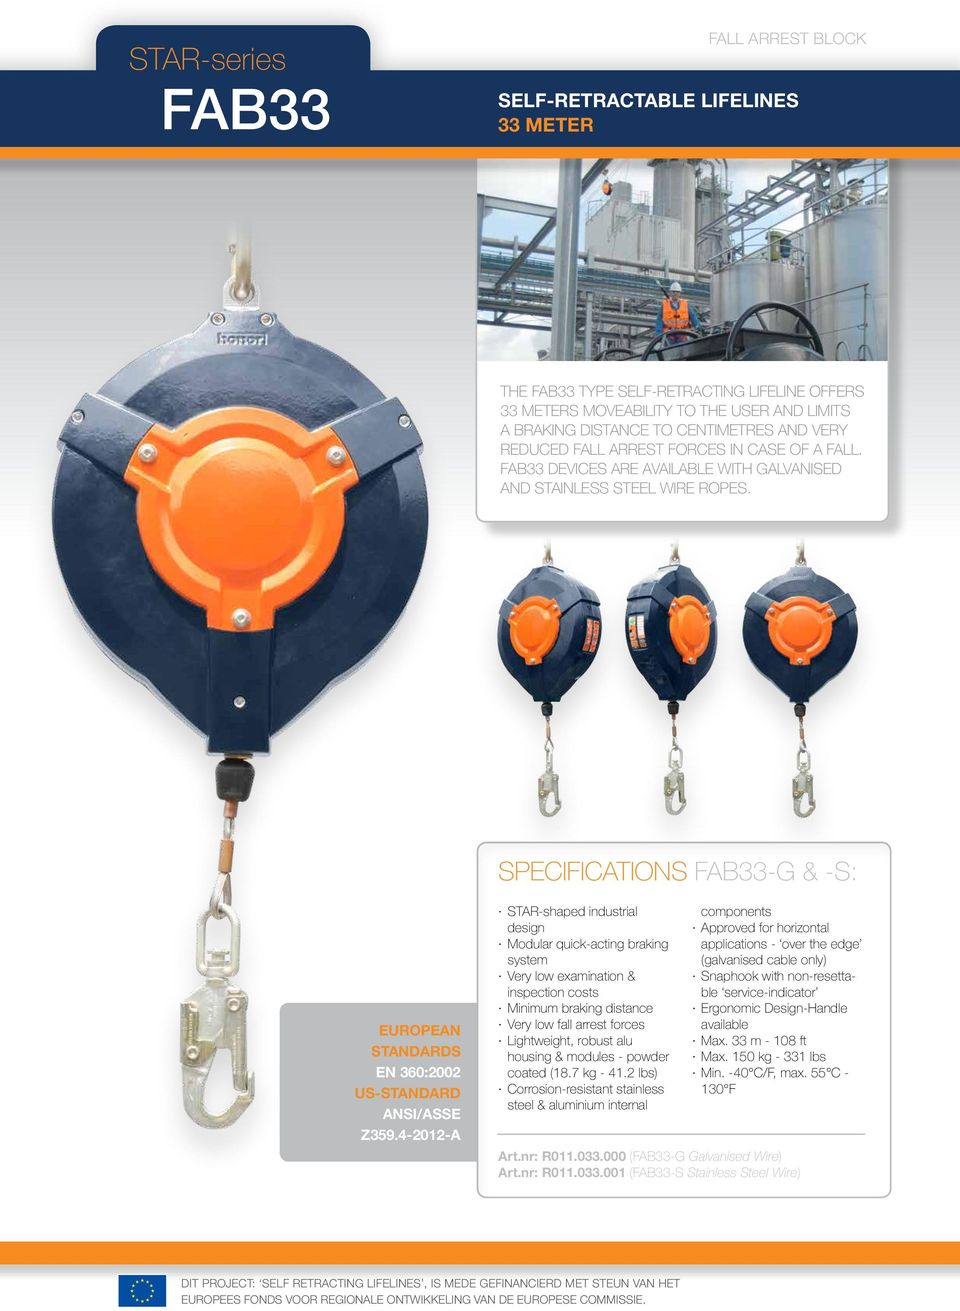 4-2012-A Modular quick-acting braking system Minimum braking distance Very low fall arrest forces coated (18.7 kg - 41.